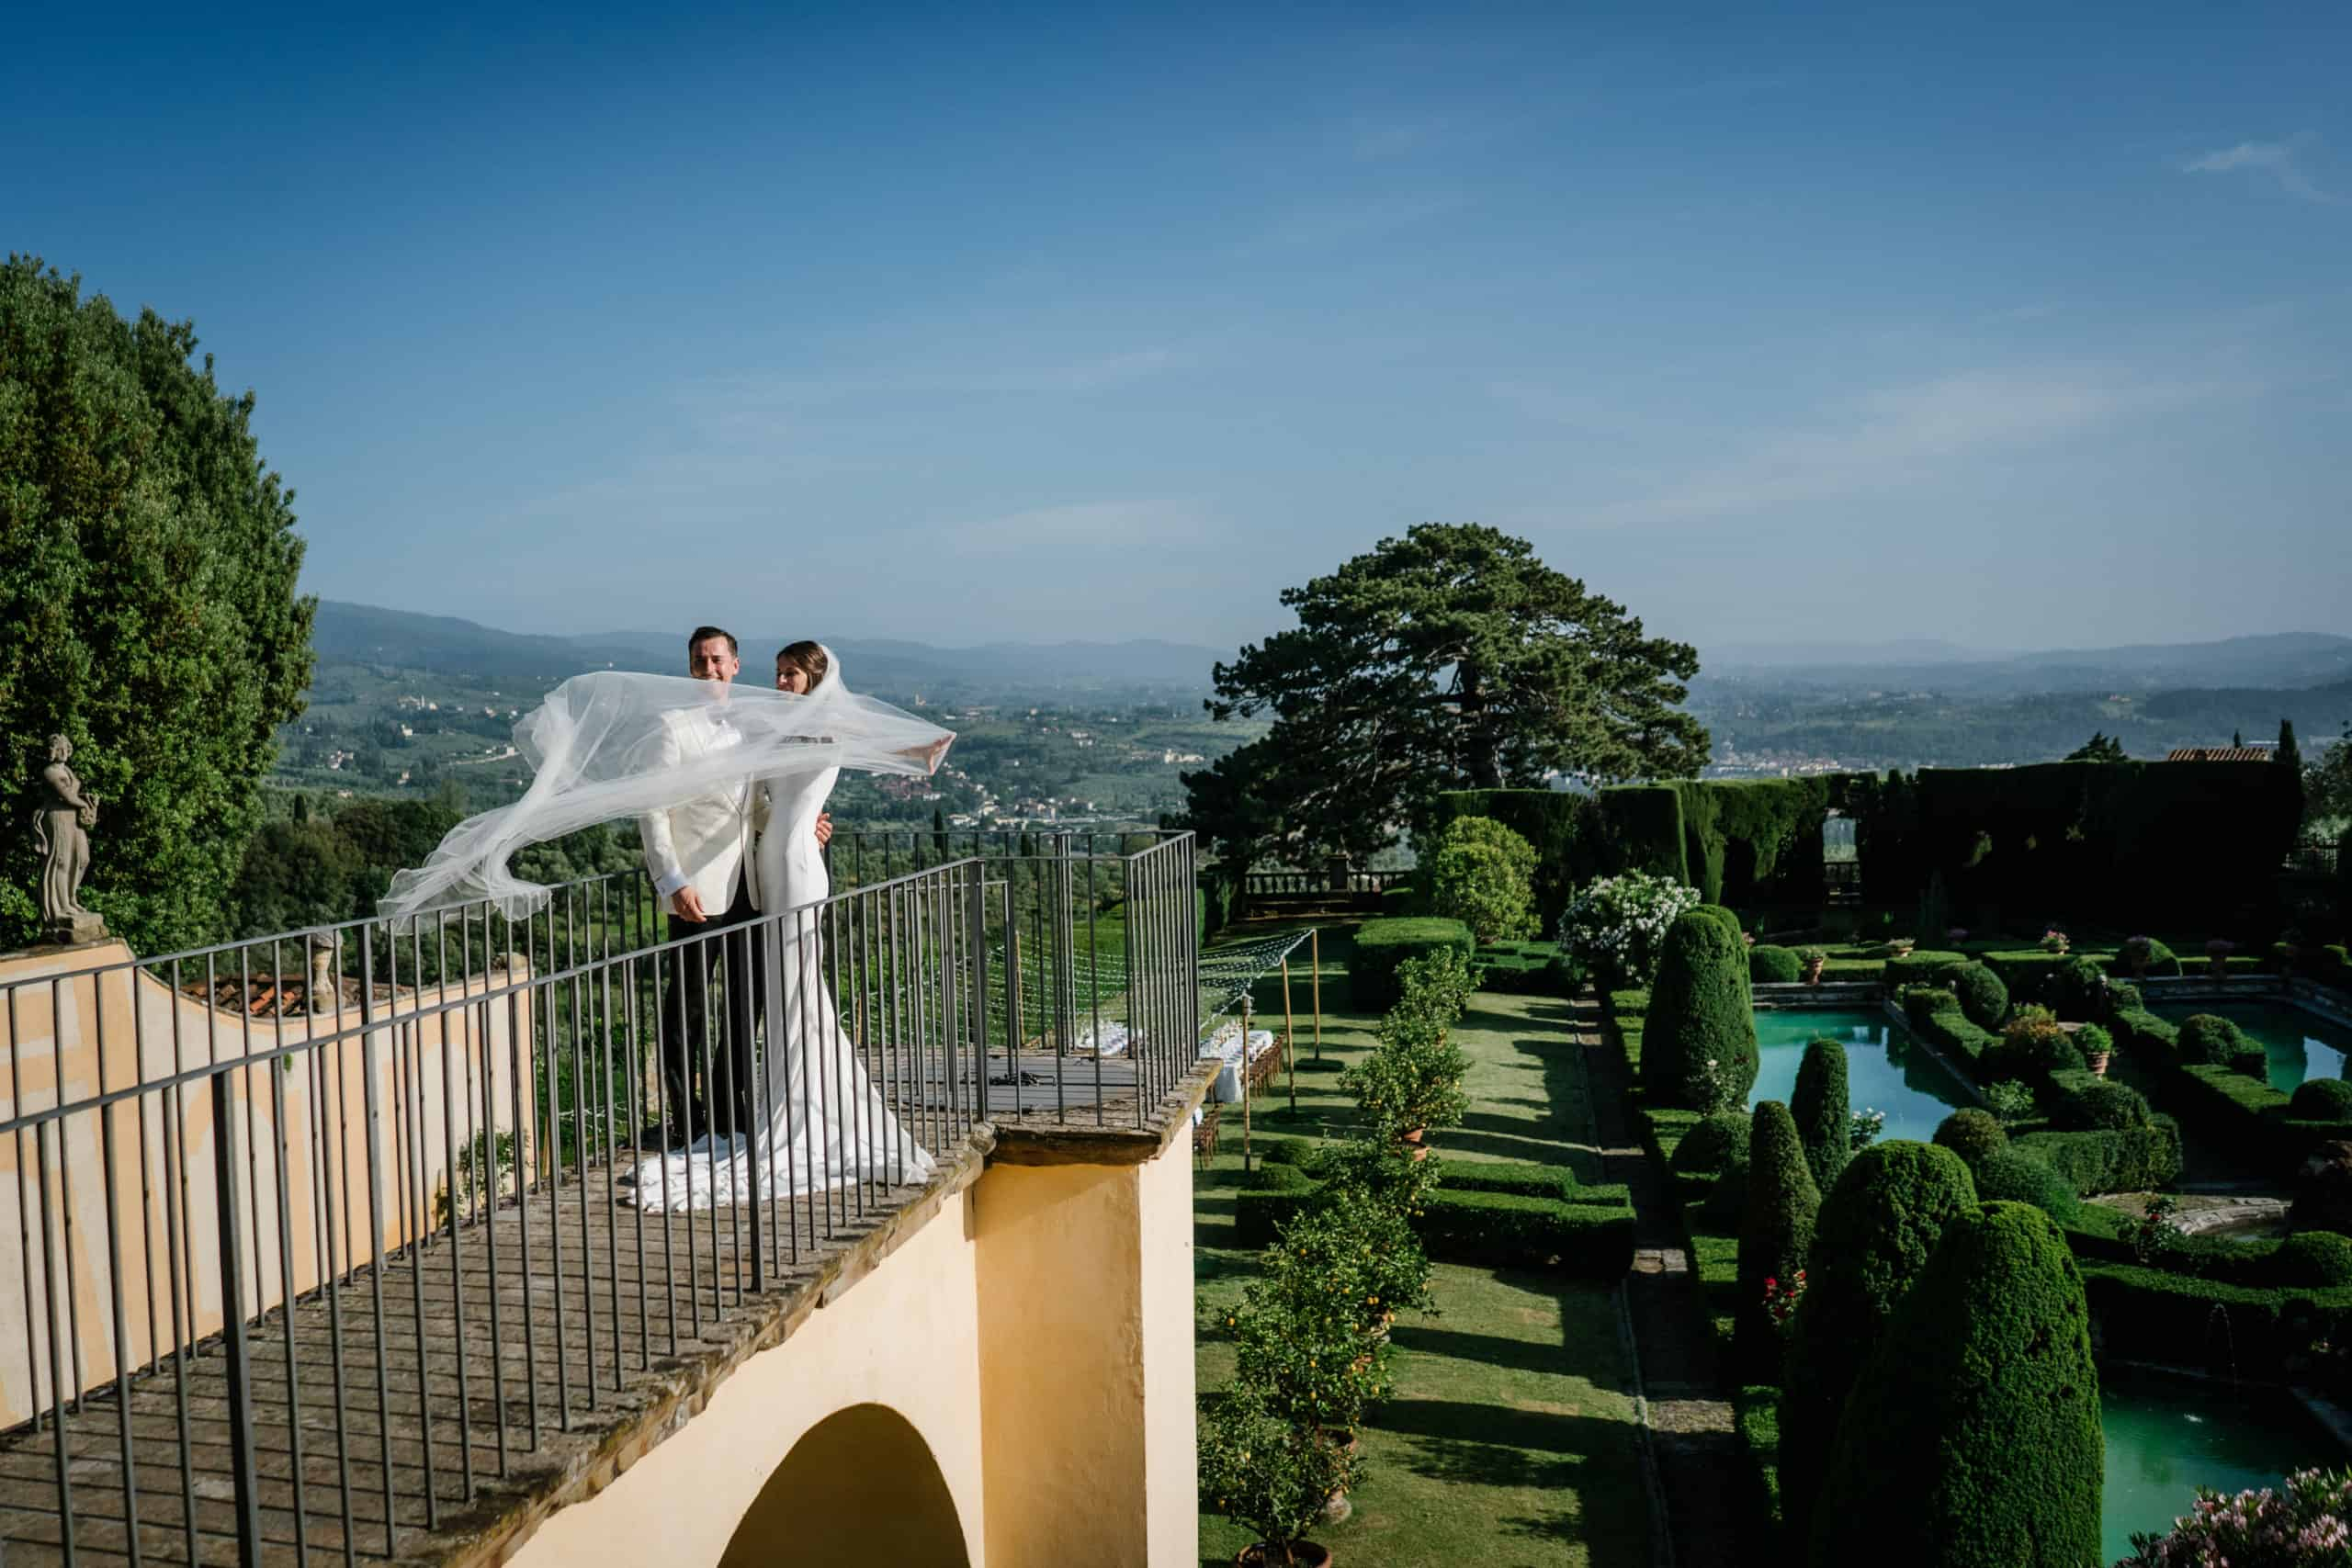 Bride and Groom look over the Tuscan landscape and villa grounds. The bride's veil flows in the sky.